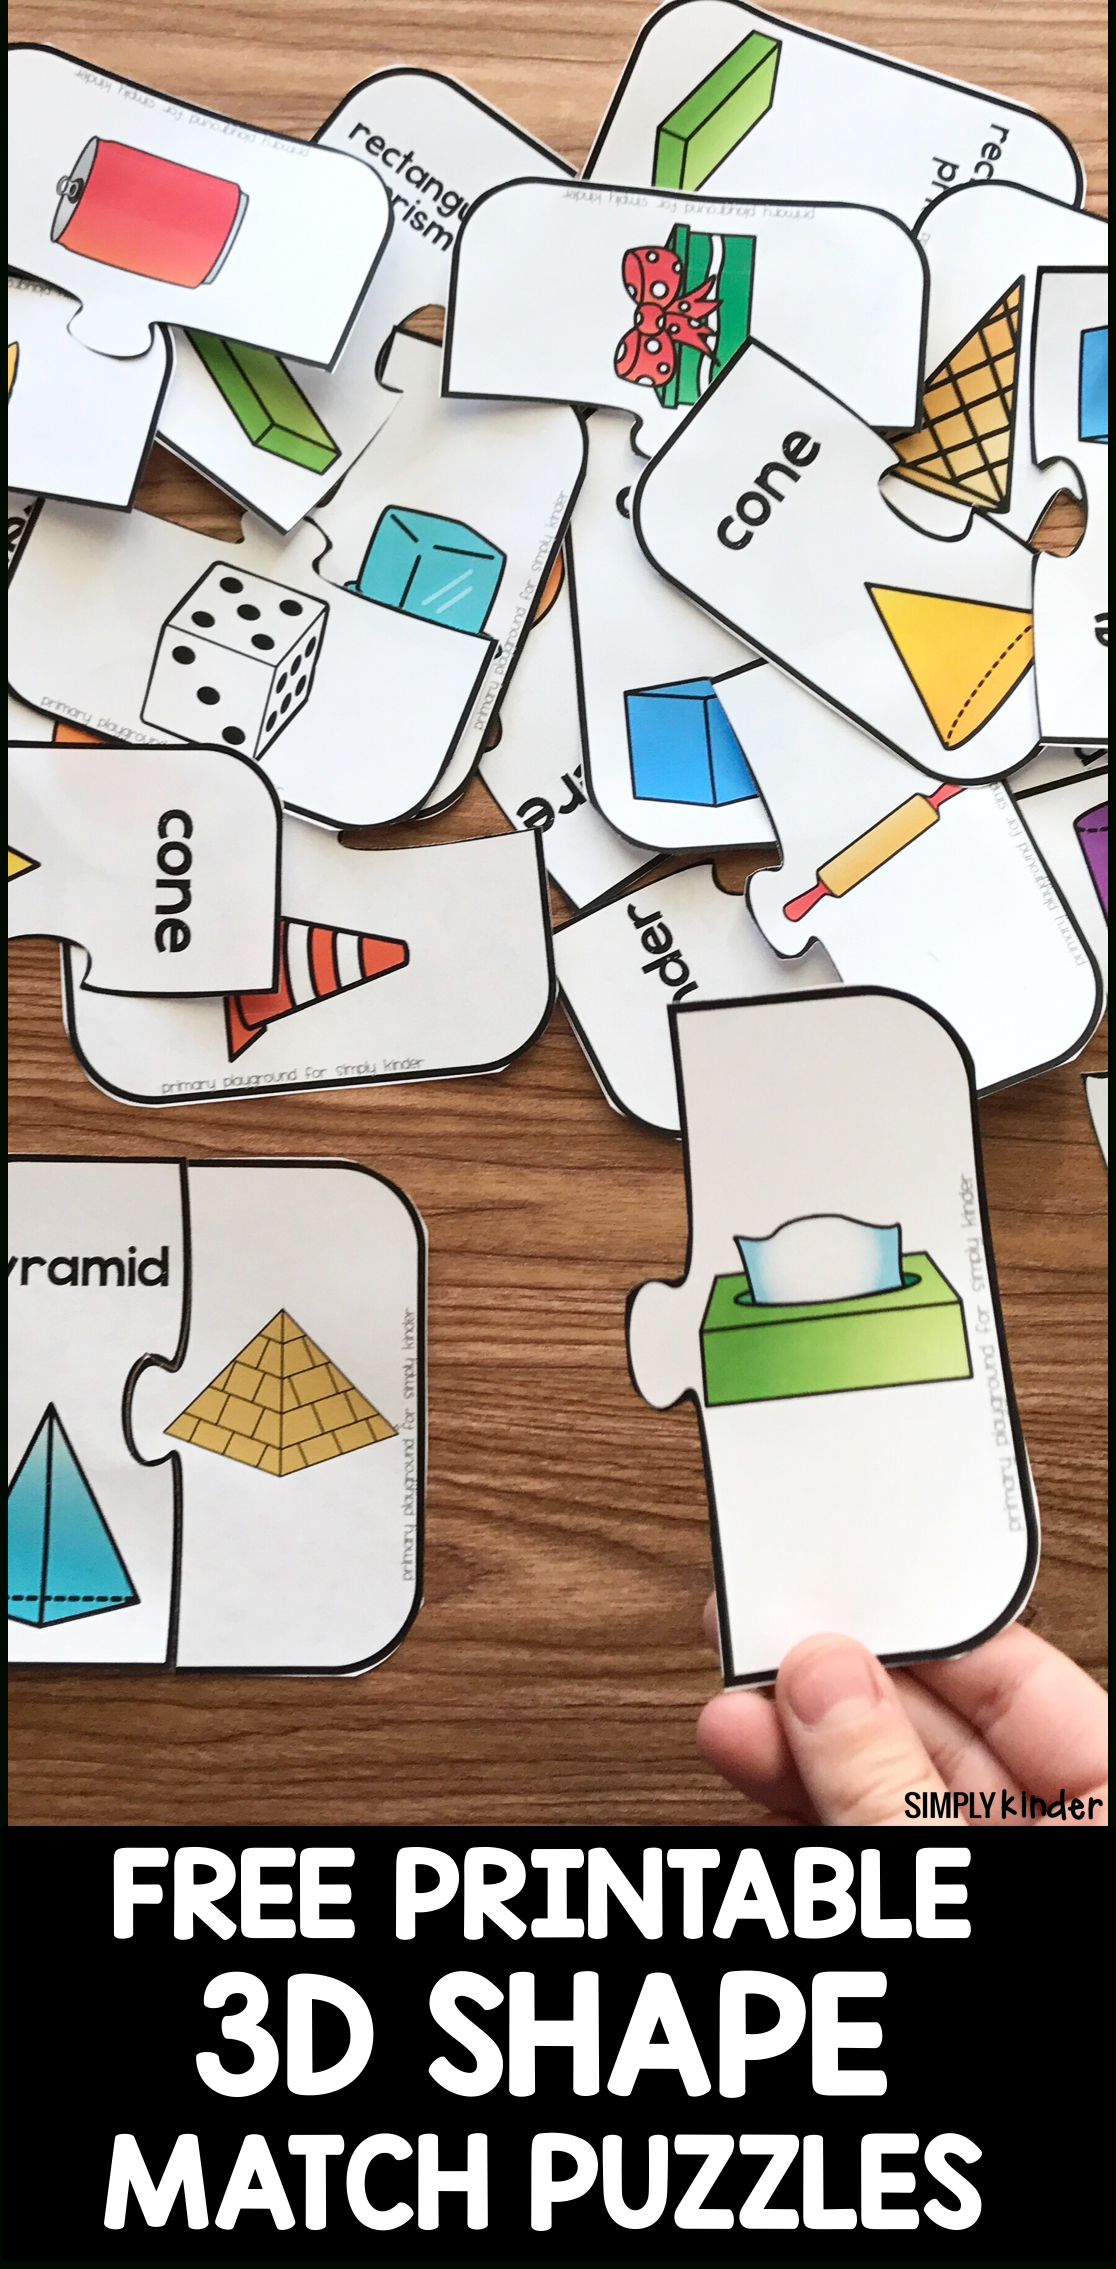 Free Printable 3D Shape Puzzles - Simply Kinder - Free Printable Shapes